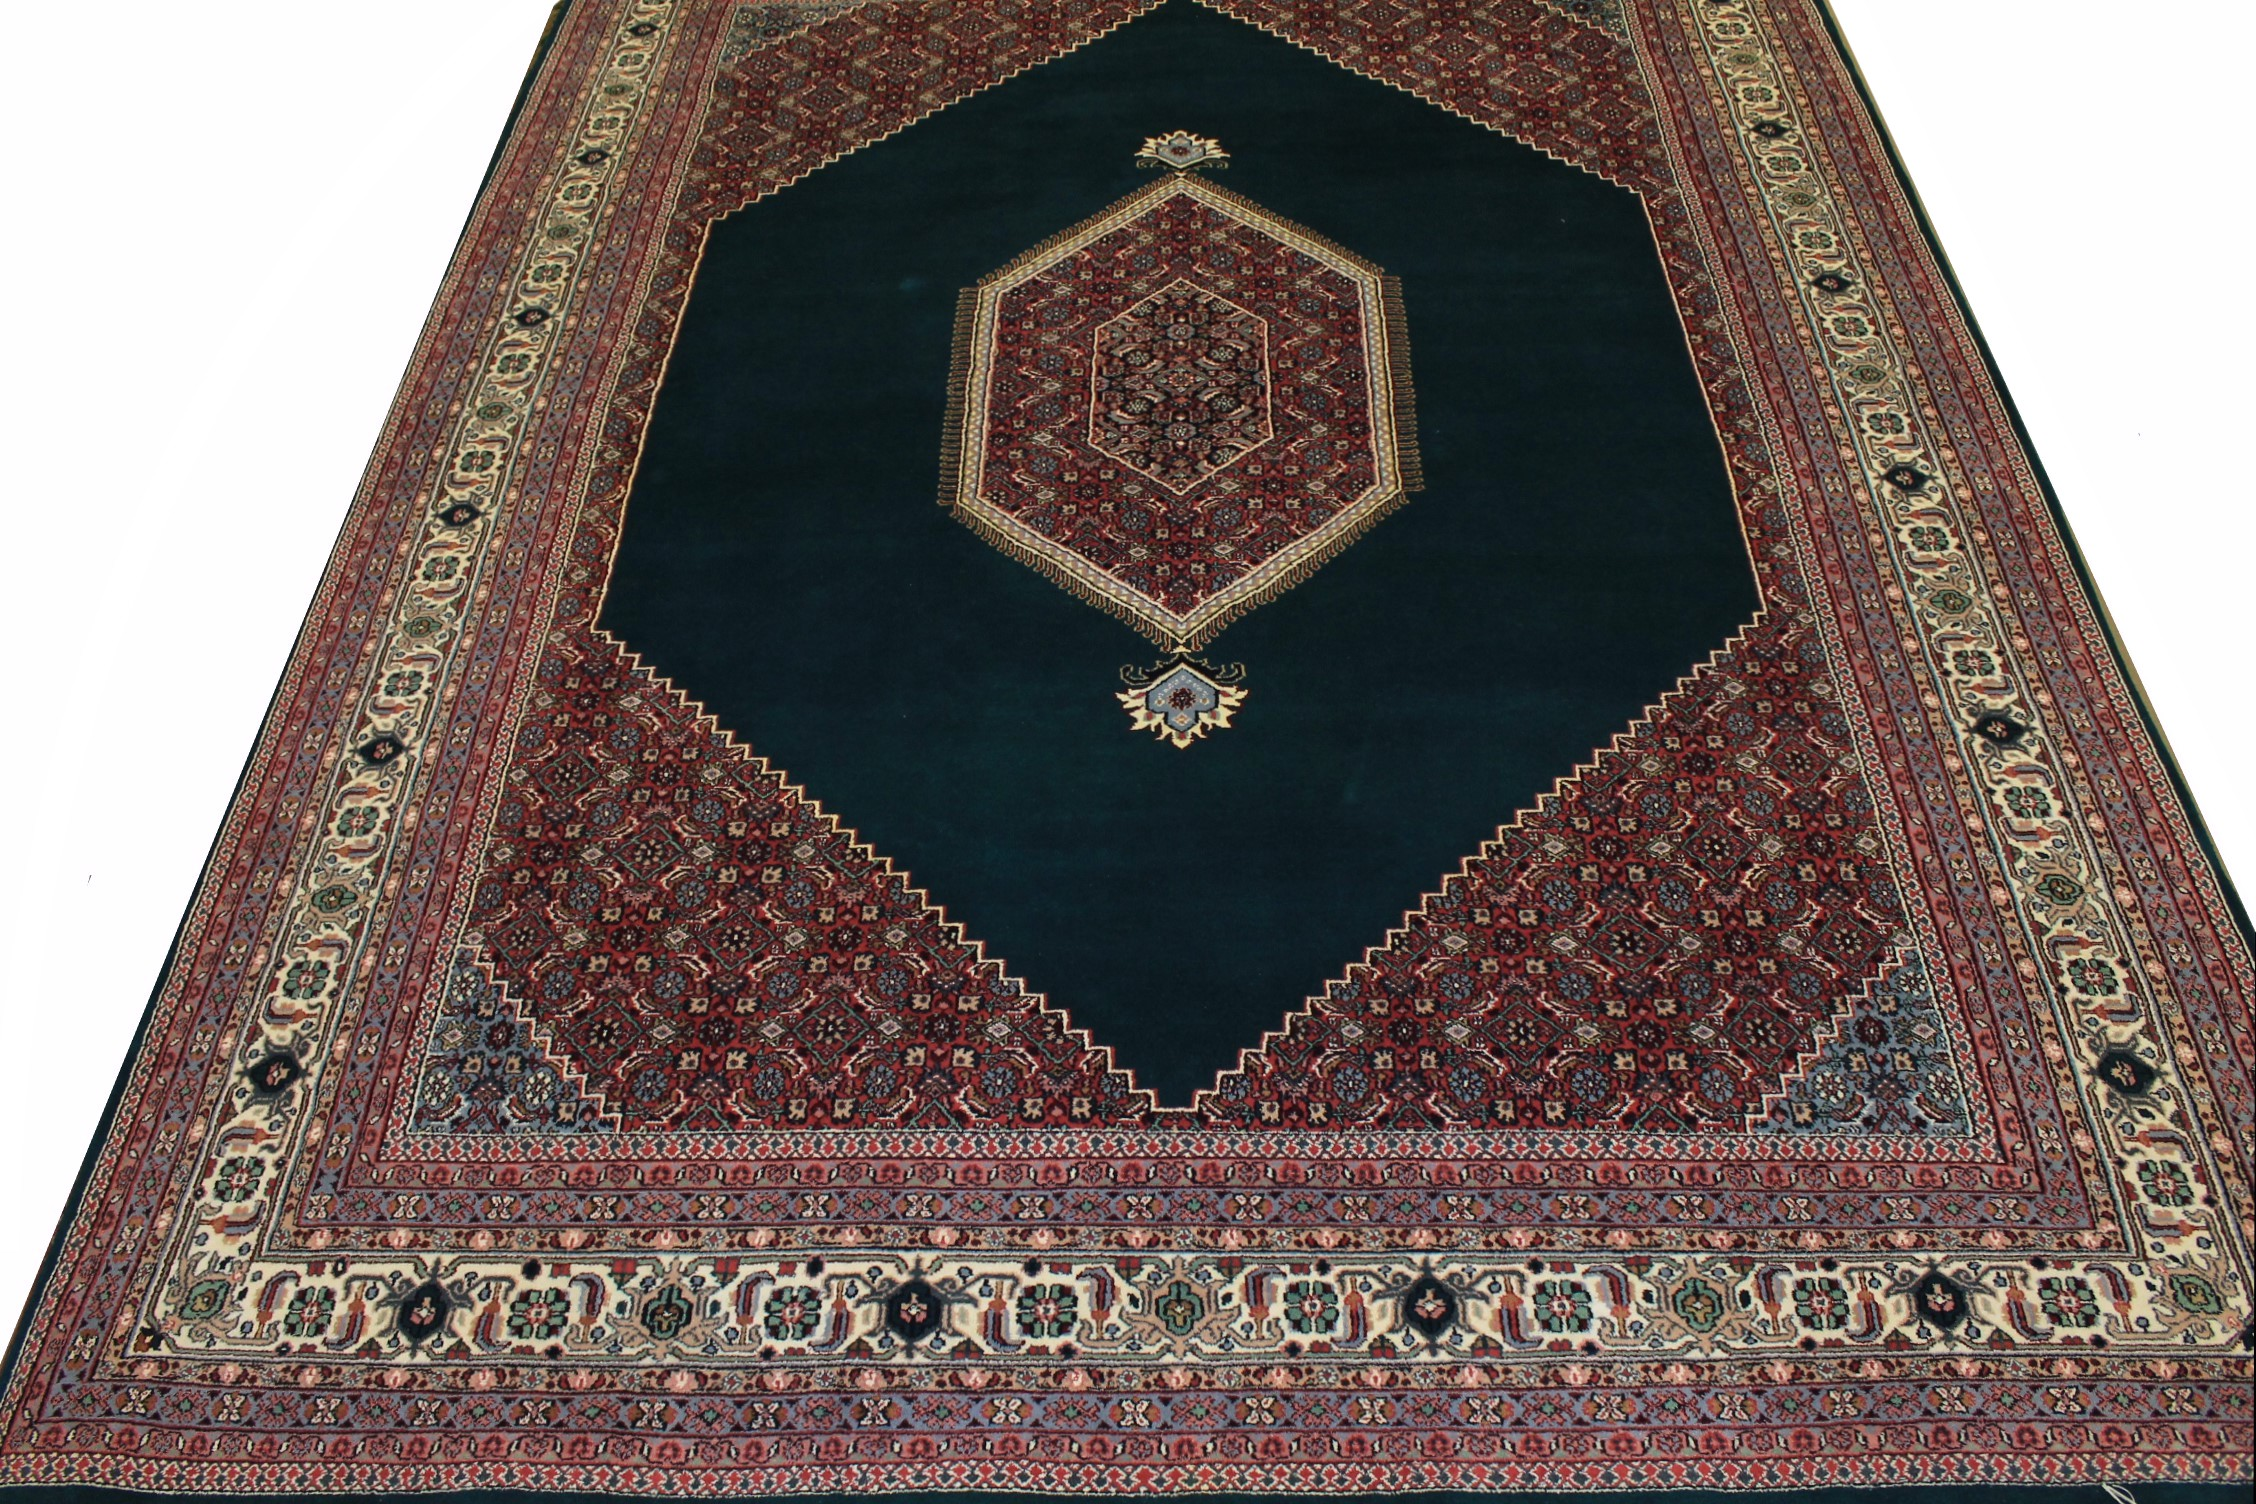 9x12 Traditional Hand Knotted Wool Area Rug - MR0237